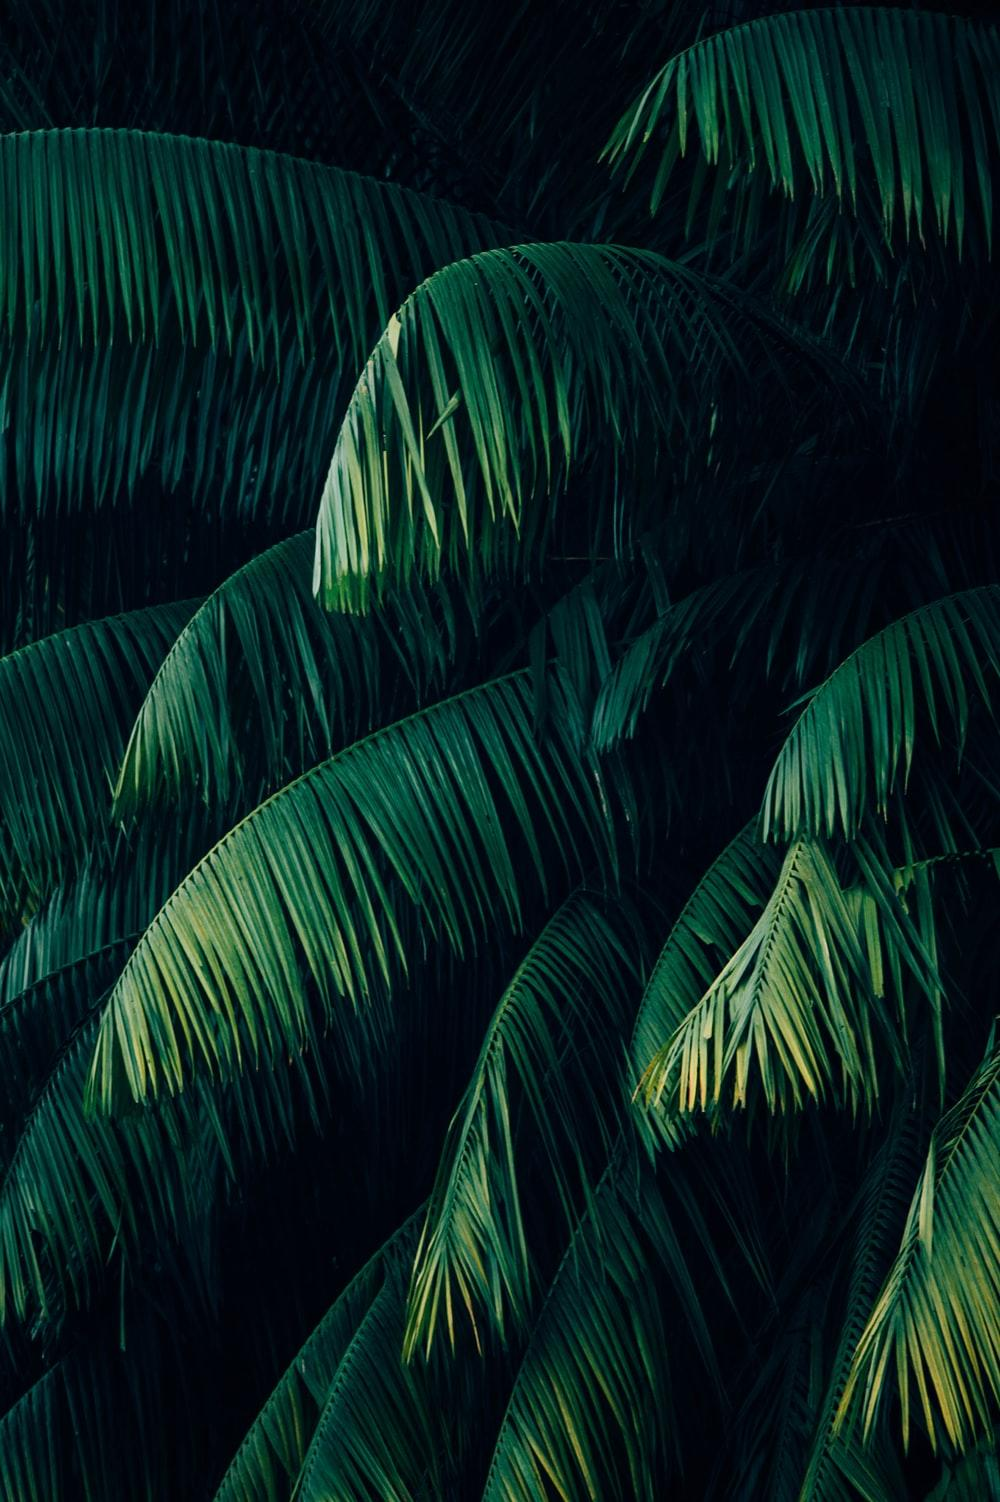 Tropical Leaf Wallpapers Wallpaper Cave 20934 tropical leaves wallpaper pbr texture seamless demo note: tropical leaf wallpapers wallpaper cave